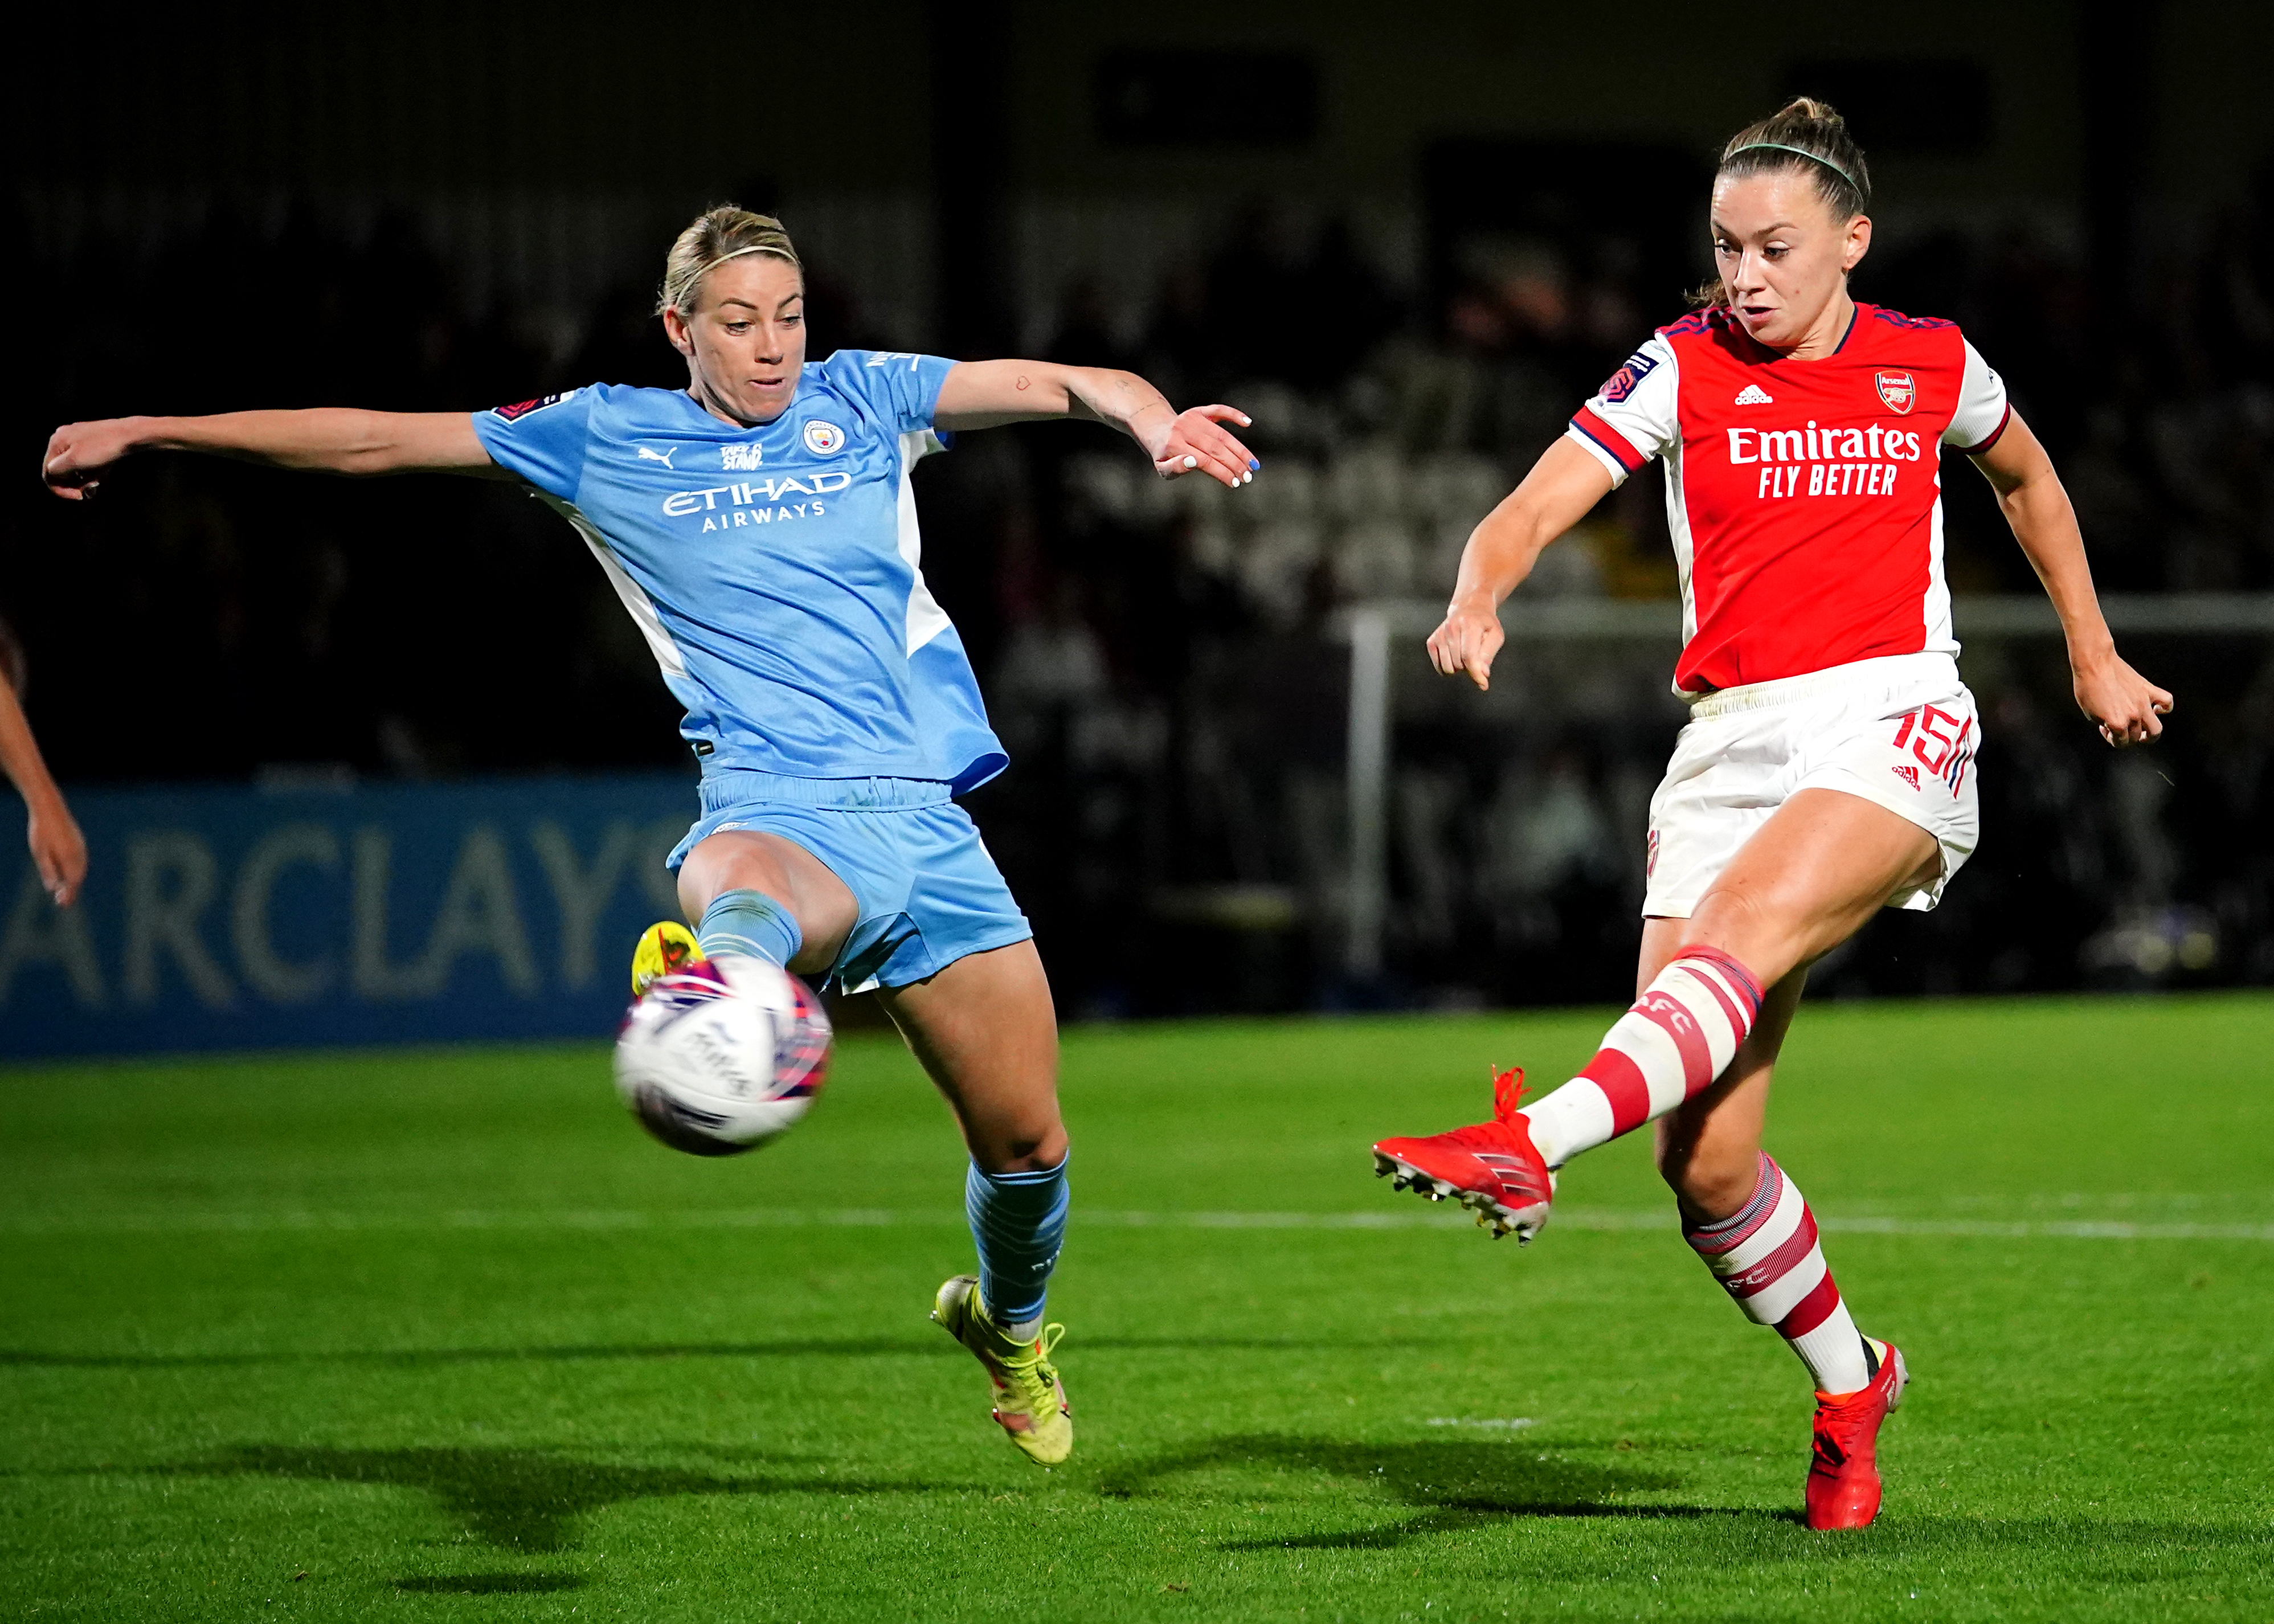 <p>Arsenal's Katie McCabe (right) celebrates scoring their side's third goal of the game during the FA Women's Super League match at Meadow Park, Borehamwood. Picture date: Sunday September 26, 2021.</p>